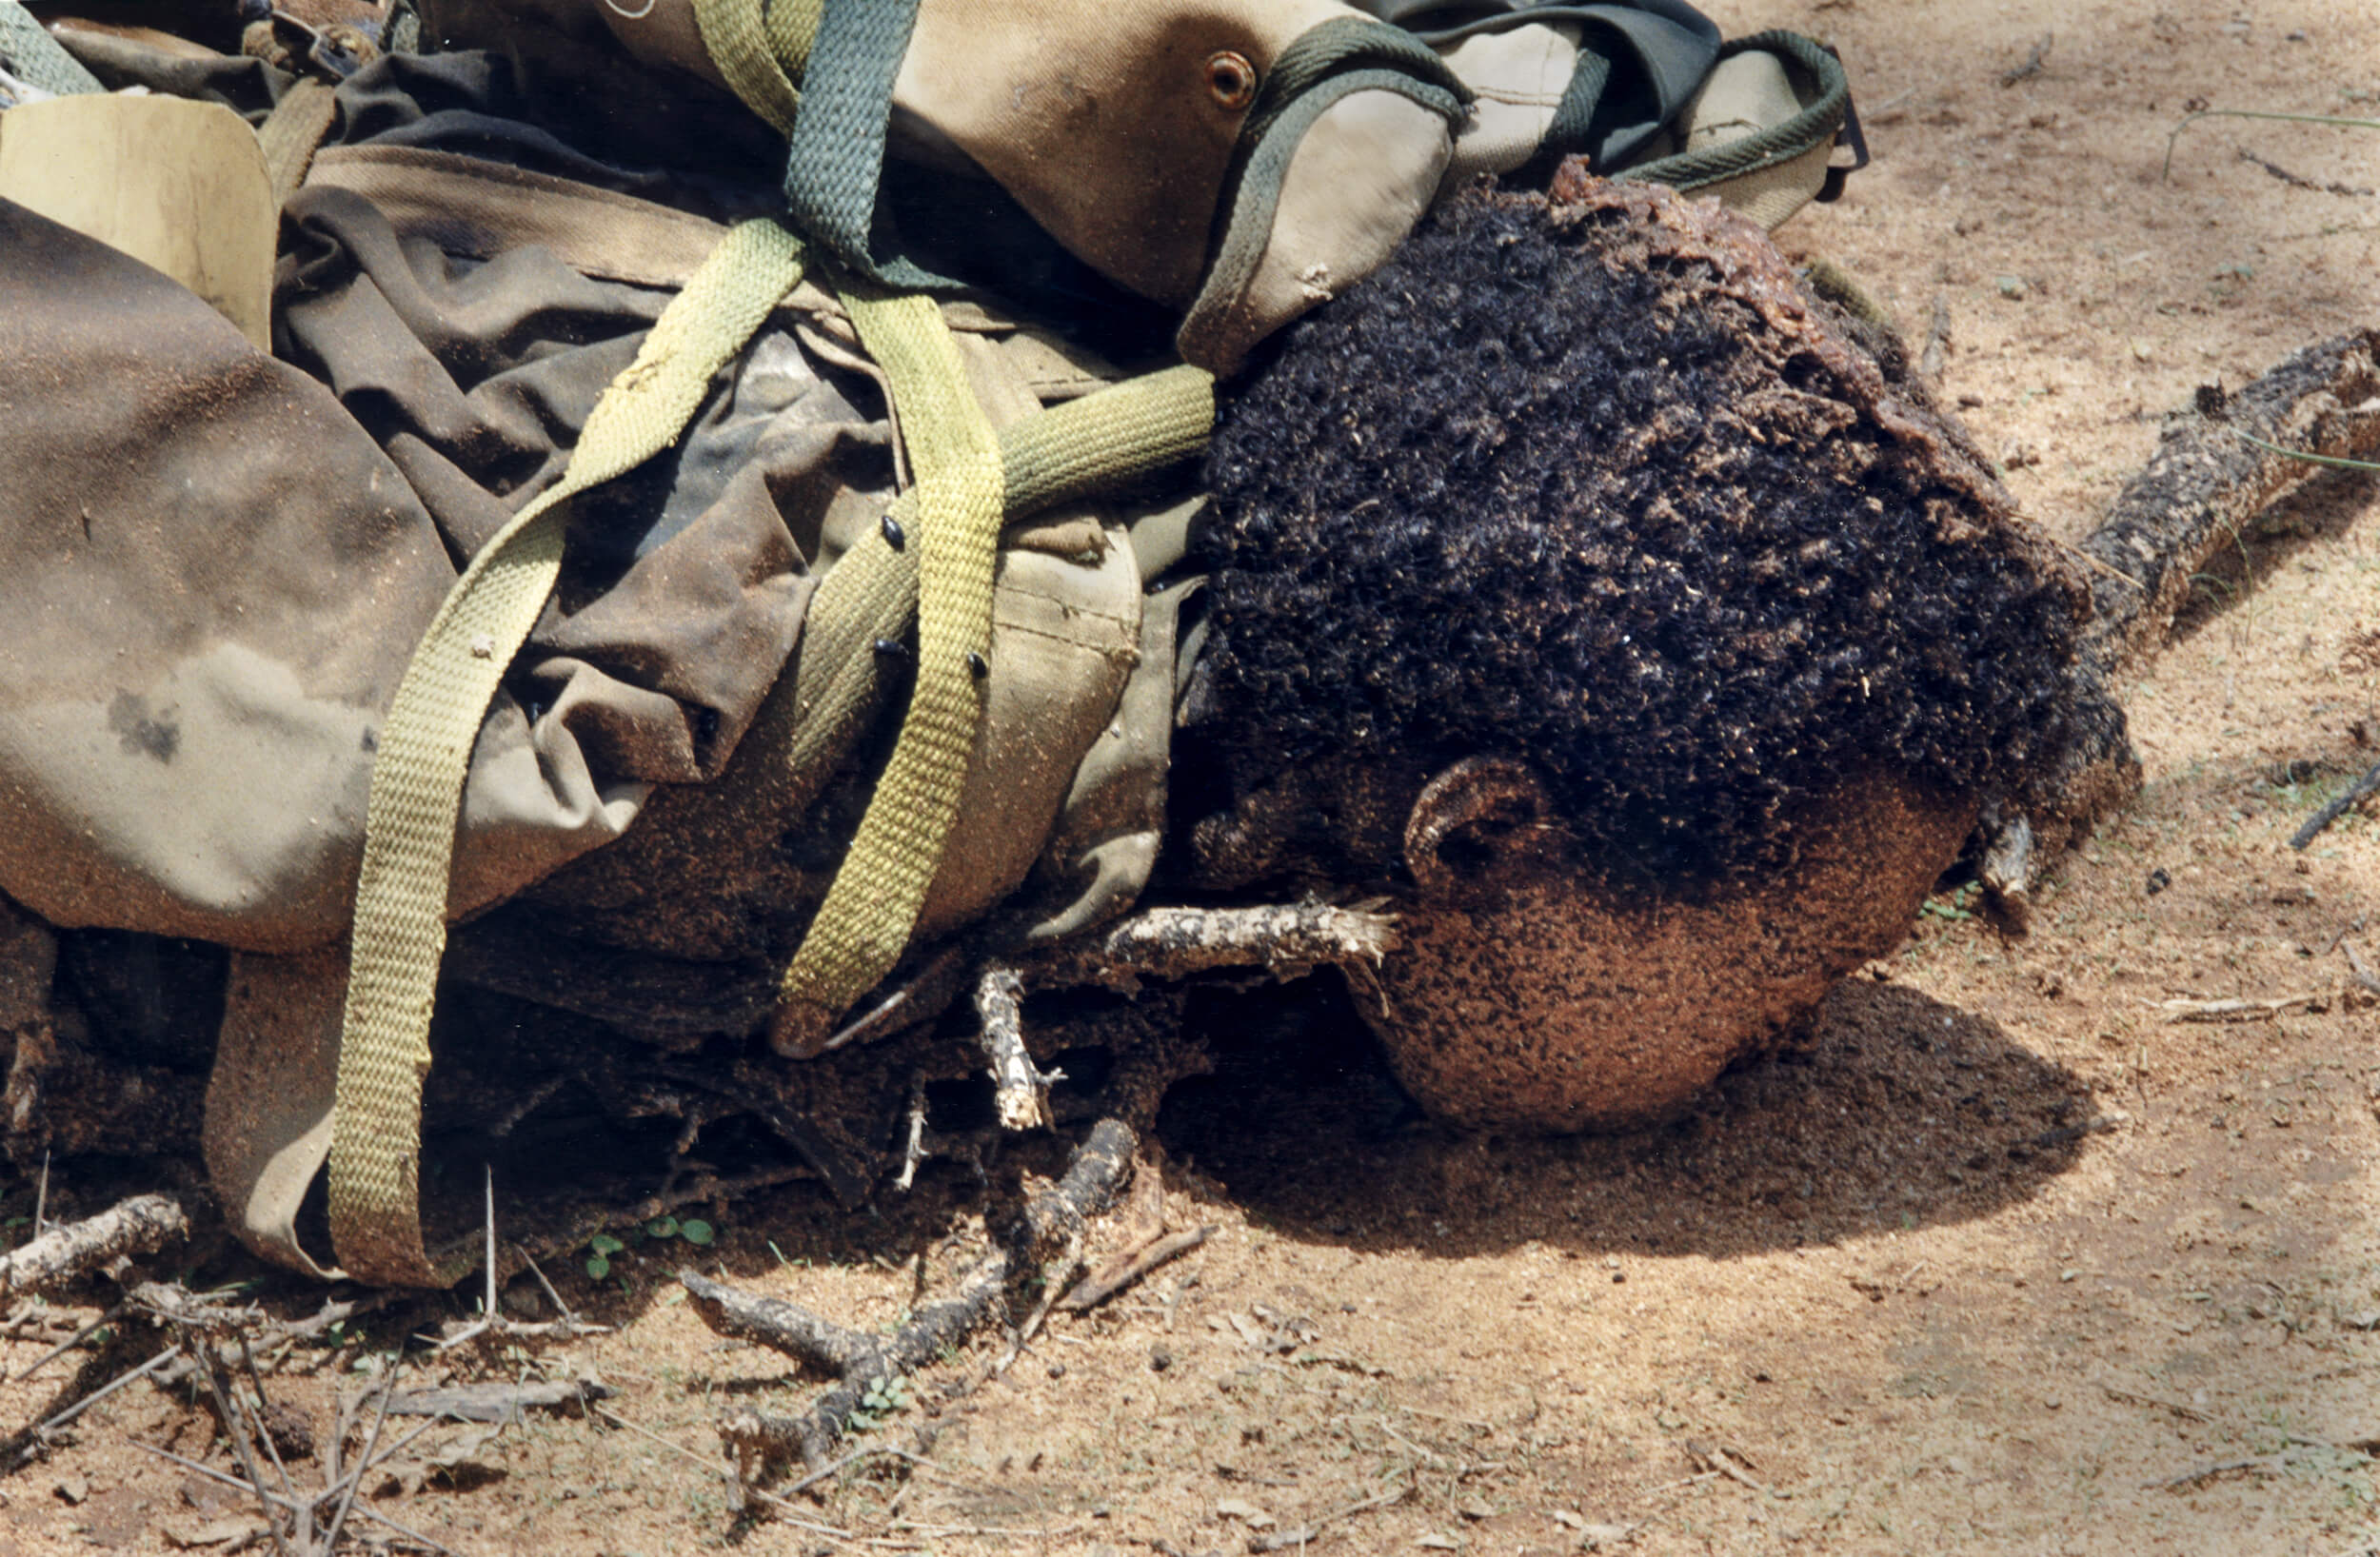 Ethiopian child soldier fallen at the Tsoronfront.